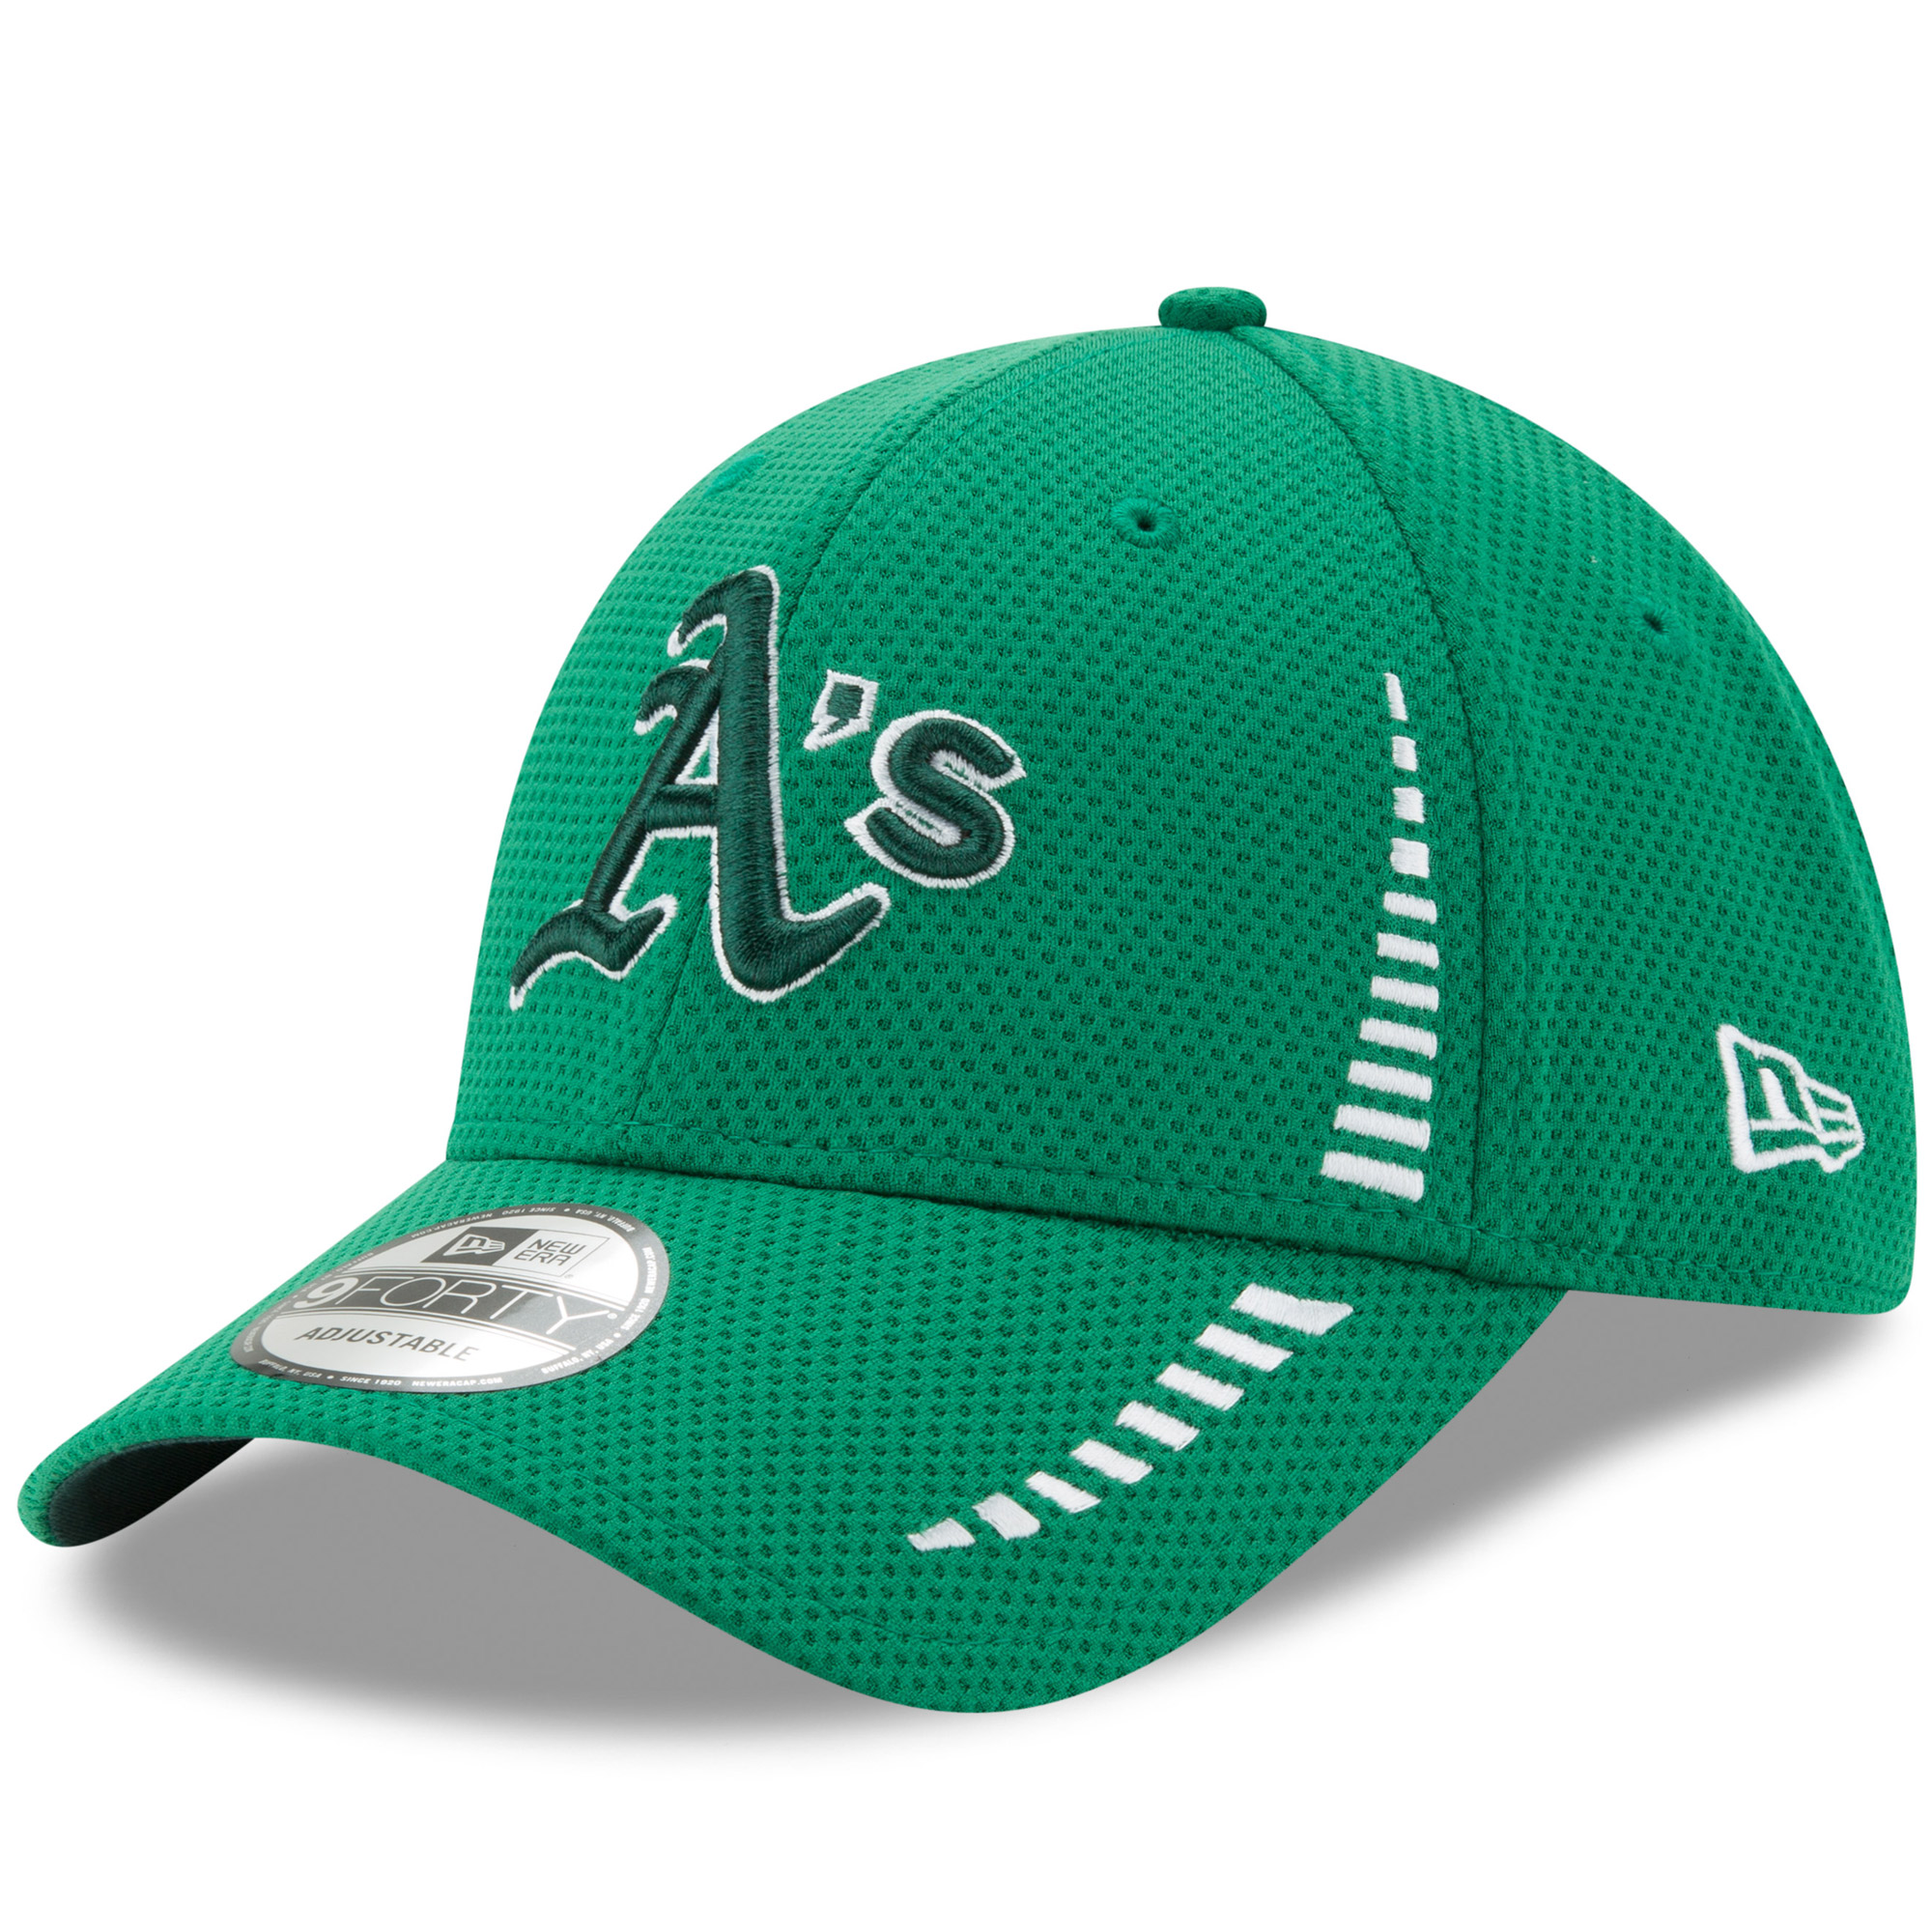 Oakland Athletics New Era Speed St. Patrick's Day 9FORTY Adjustable Hat - Kelly Green - OSFA